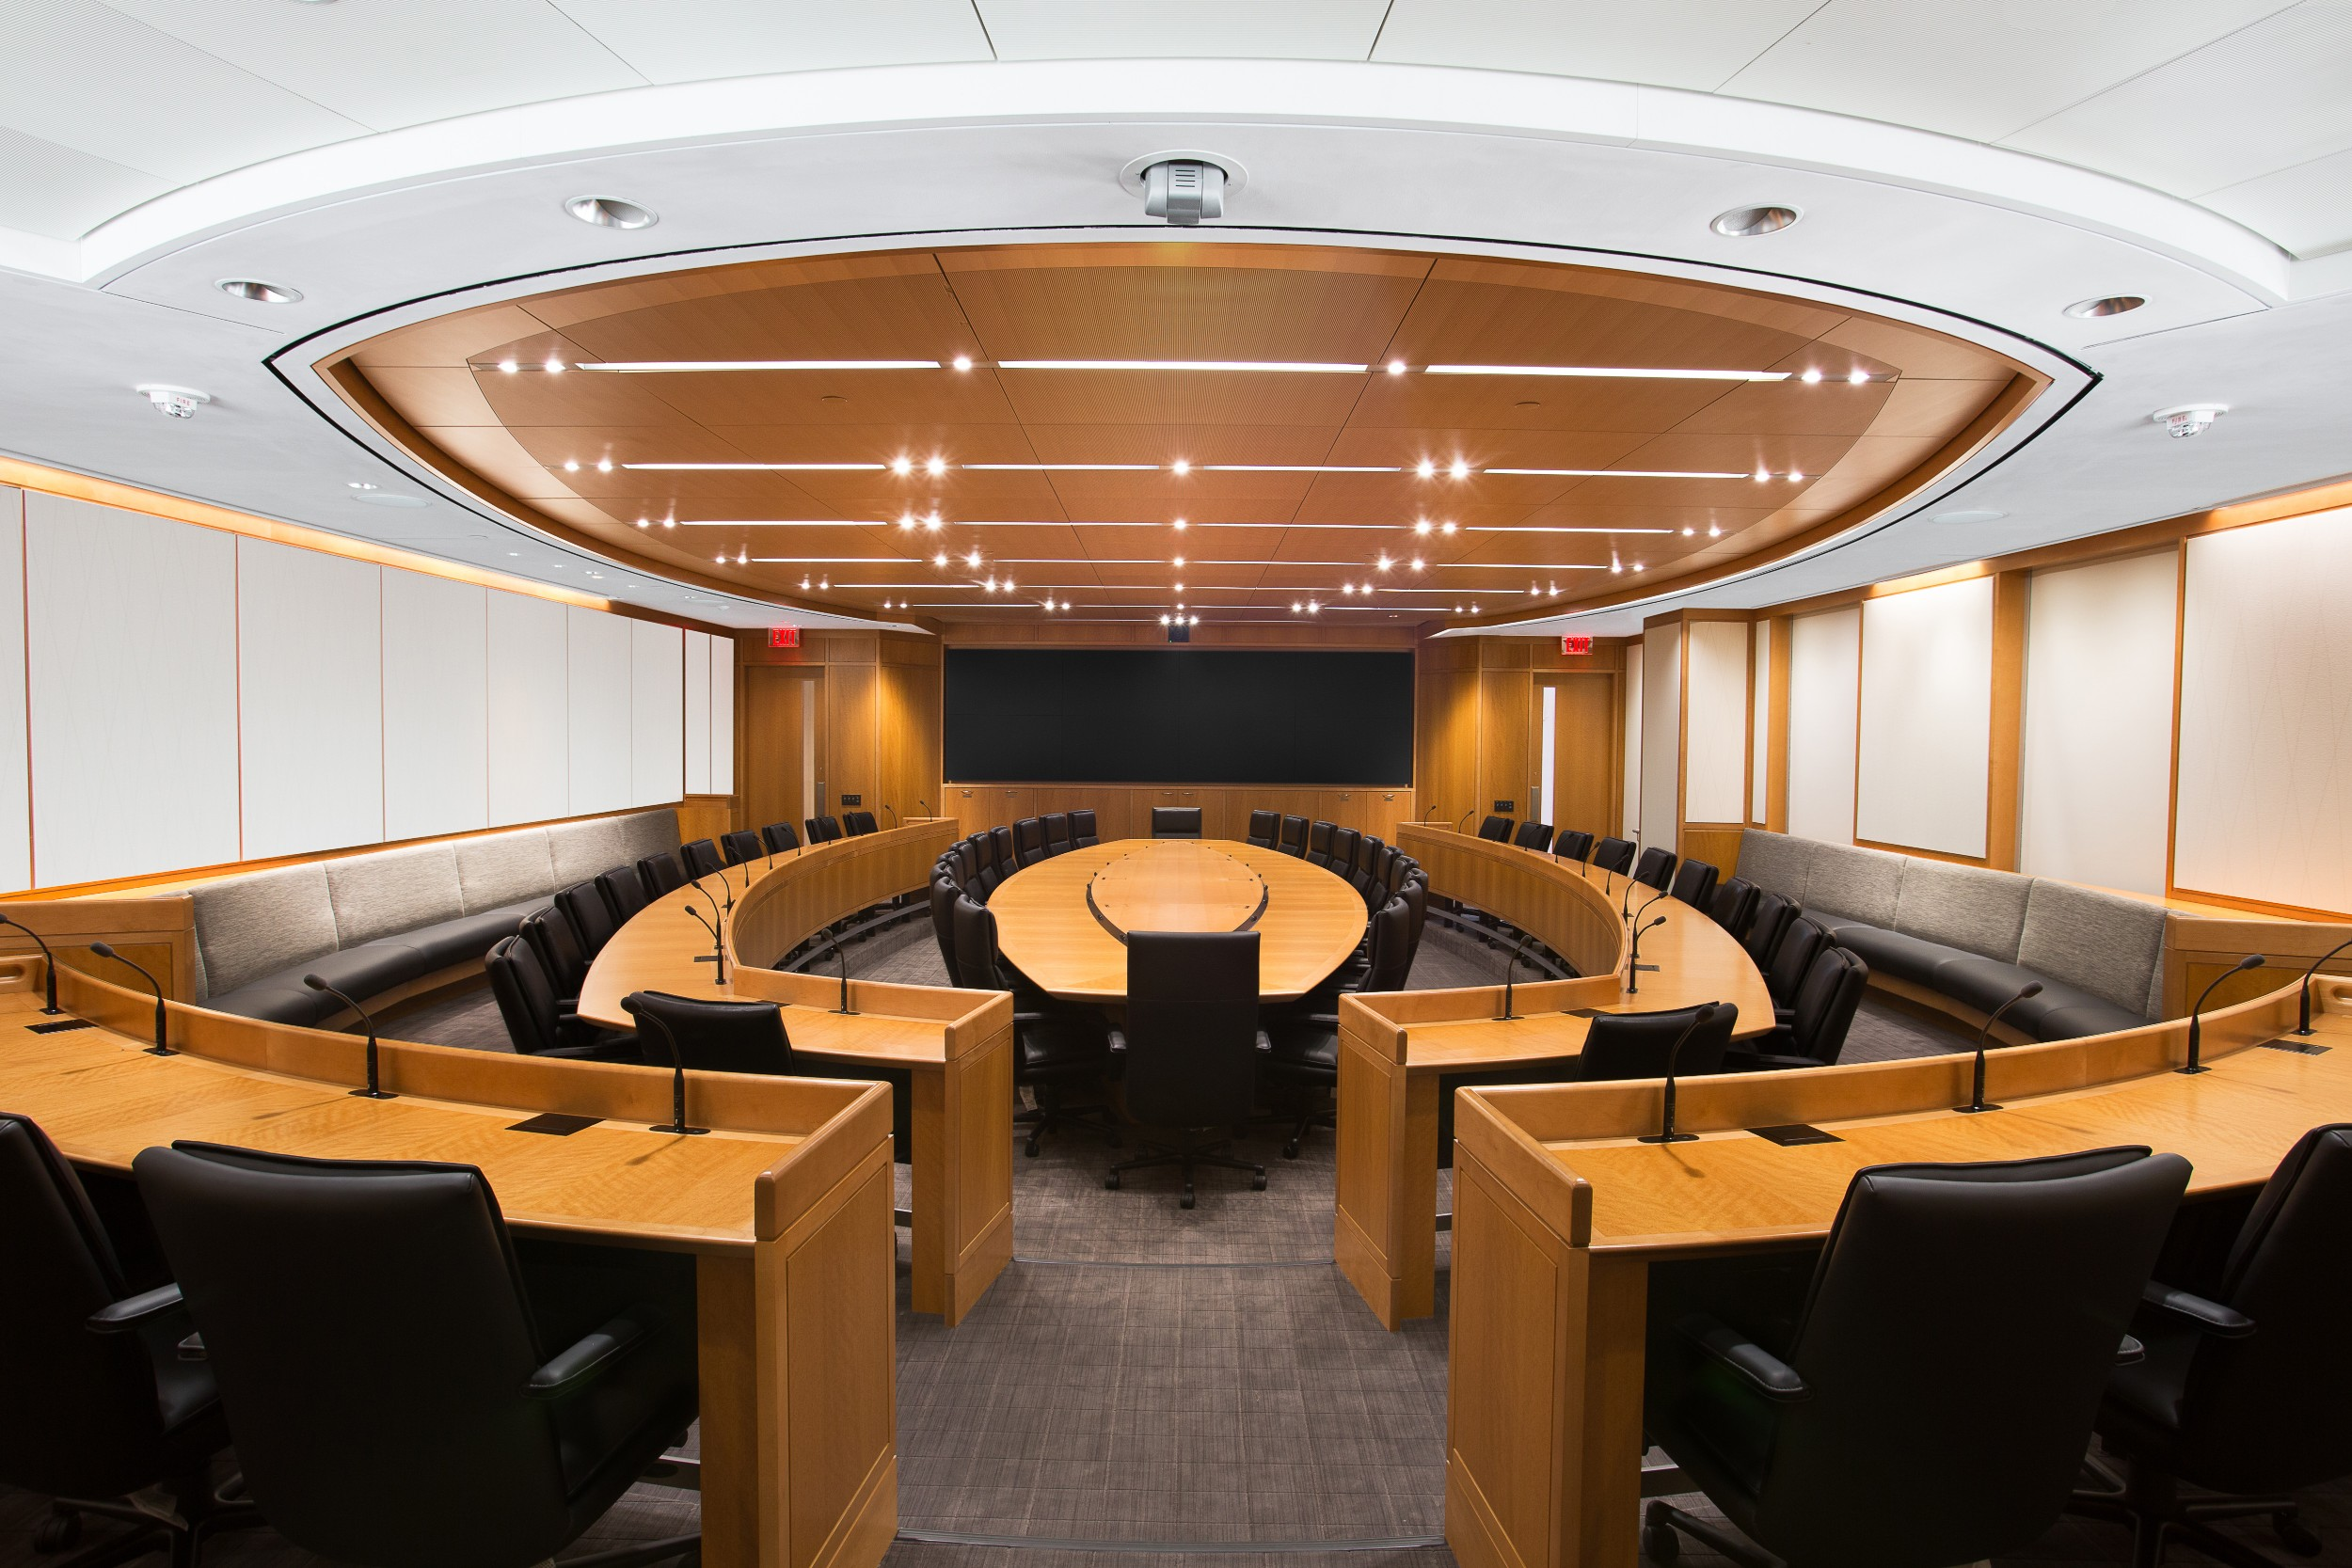 Corderman_Confidential_Office_Interior_Construction_Auditorium_View_2.jpg